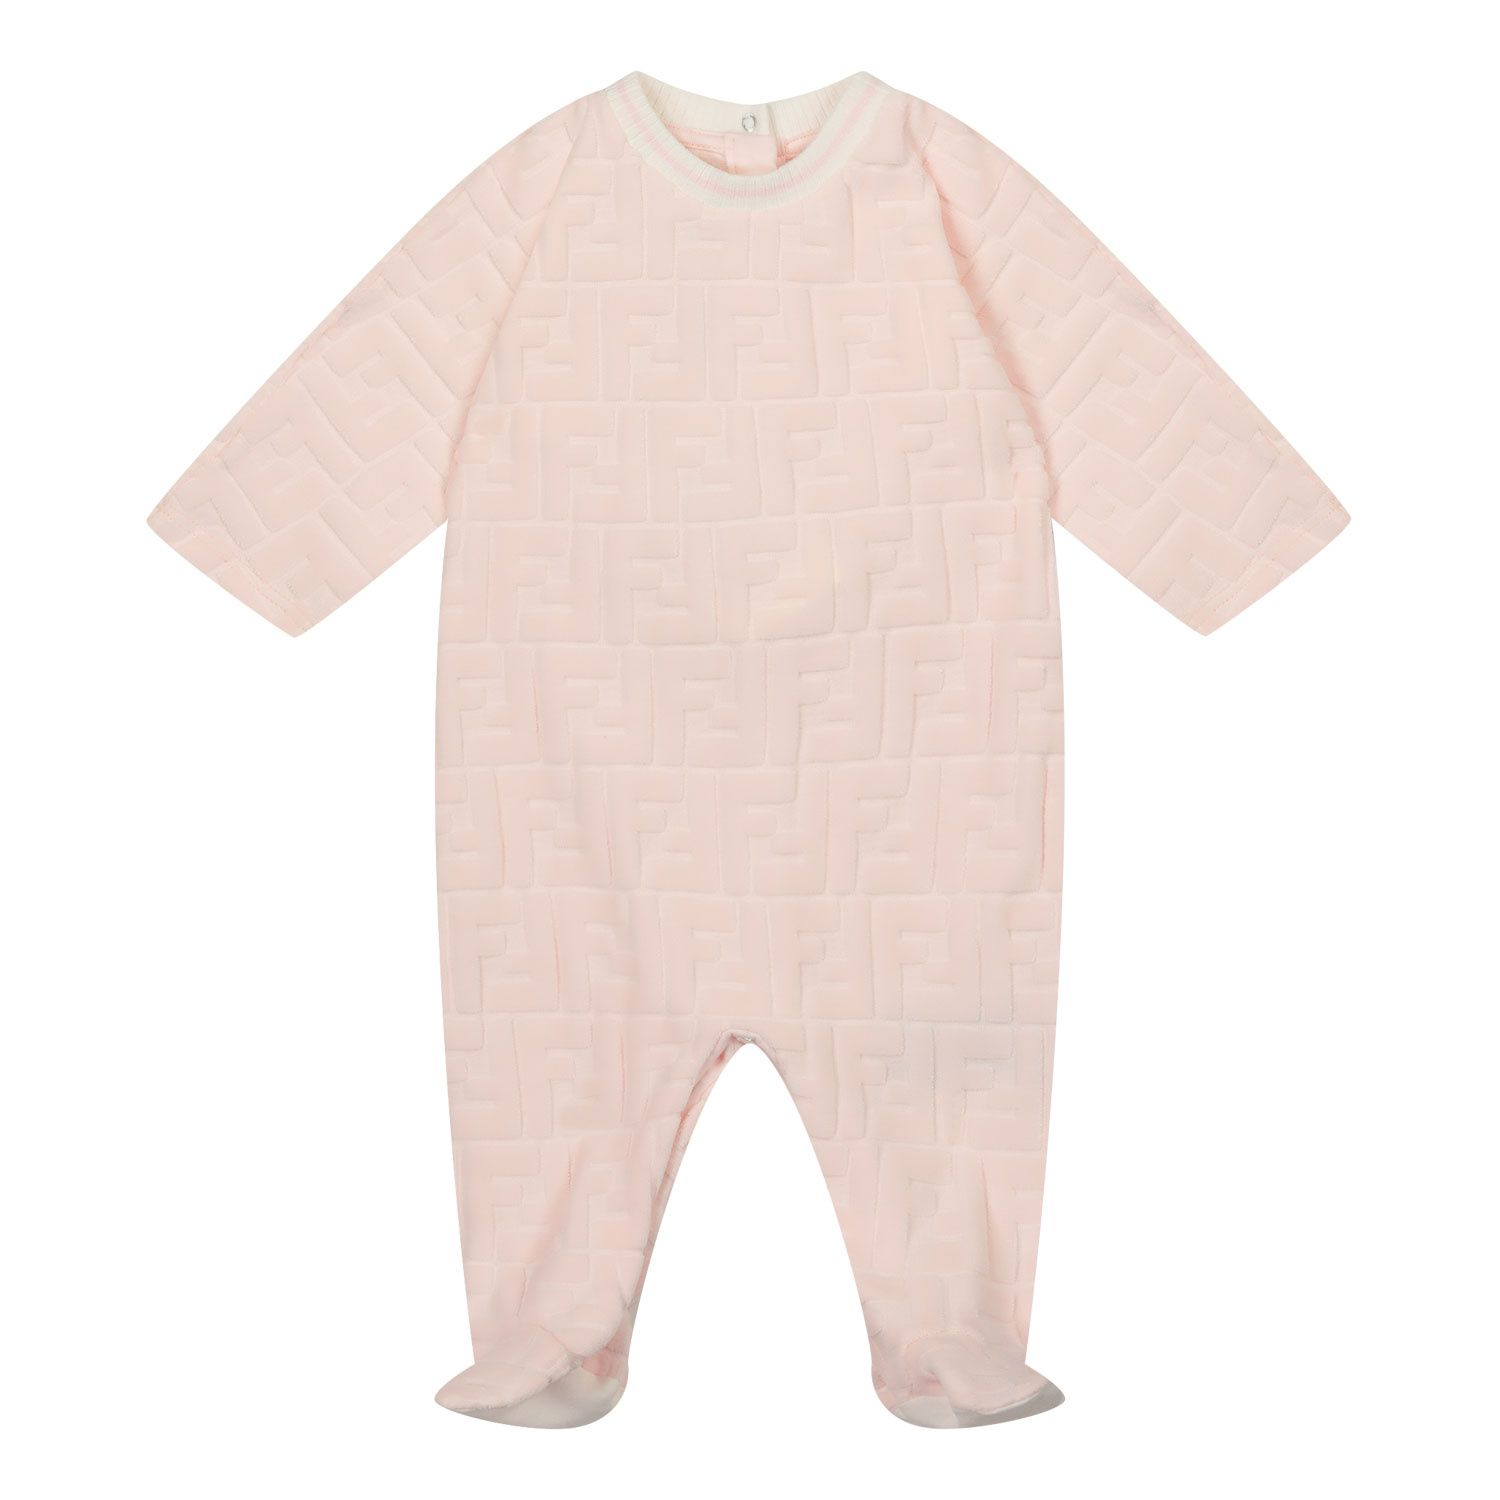 Picture of Fendi BUL056 ACA8 baby playsuit light pink